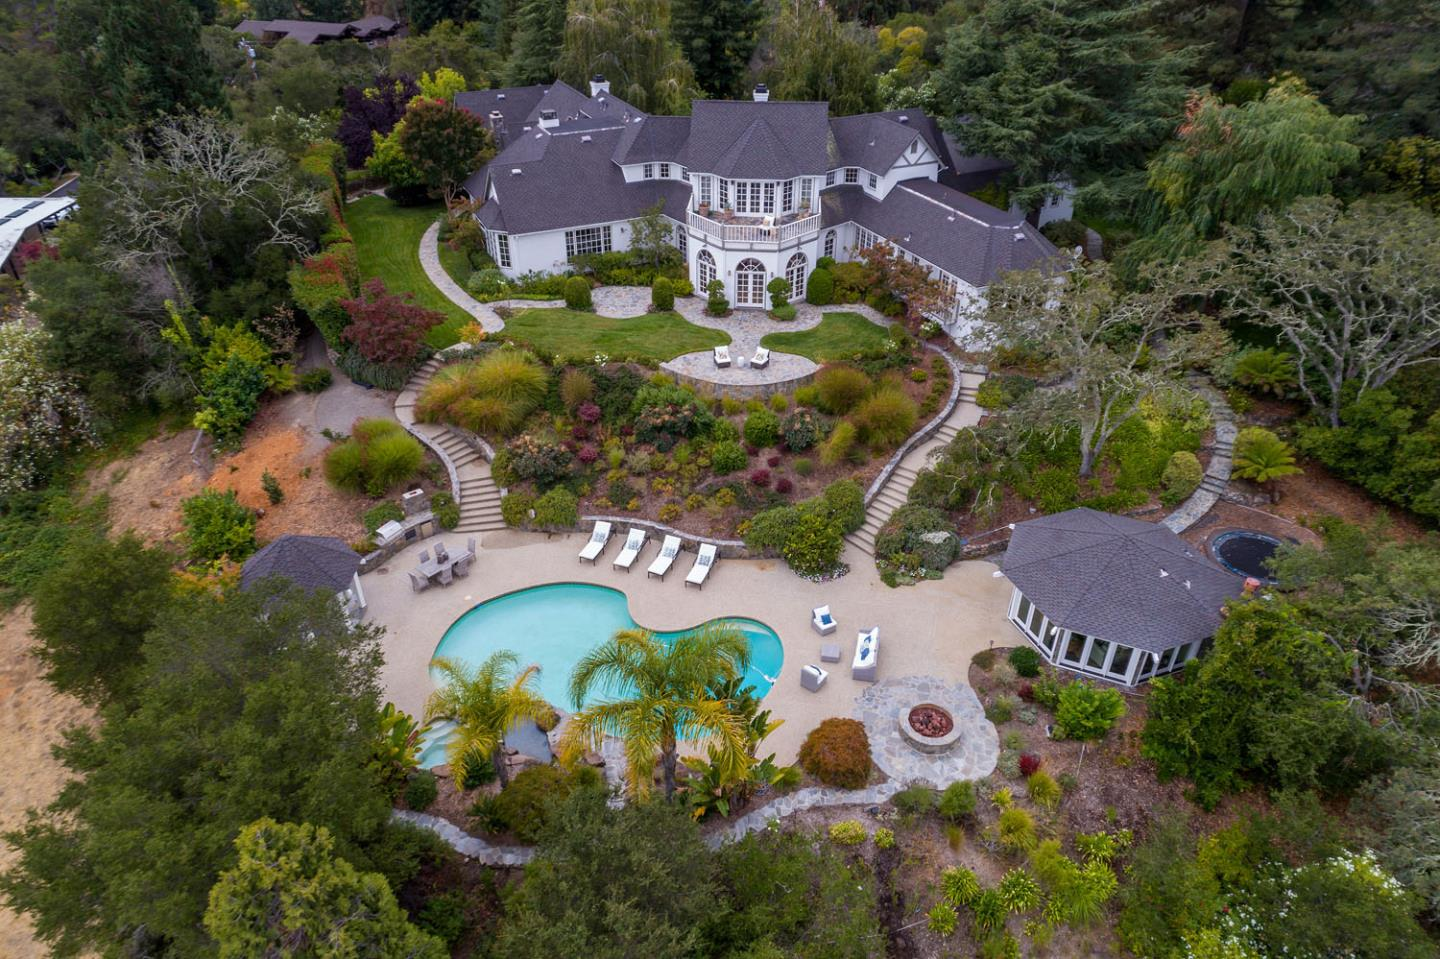 125 LAKEVIEW DR, WOODSIDE, CA 94062